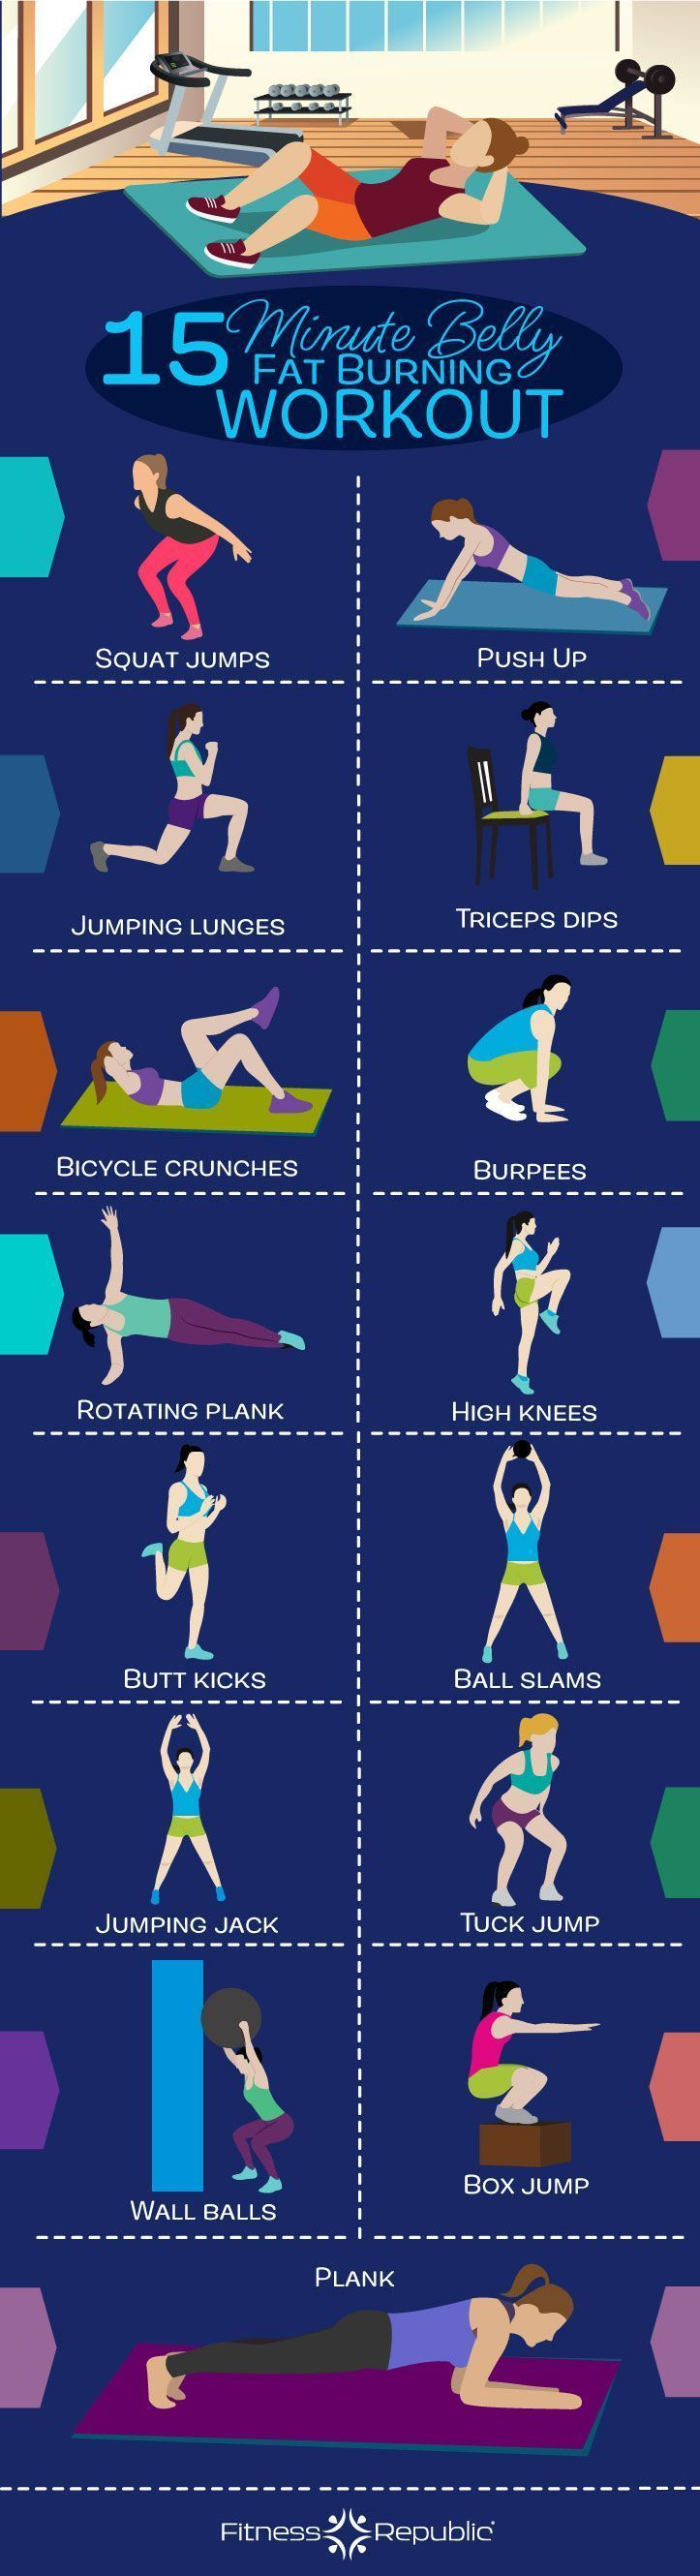 See more here ► www.youtube.com/... Tags: need to lose belly fat, what foods to eat to lose belly fat, how to lose belly fat fast without dieting - 15-Minute Belly Fat Burning Workout | Fitness Republic #exercise #diet #workout #fitness #health